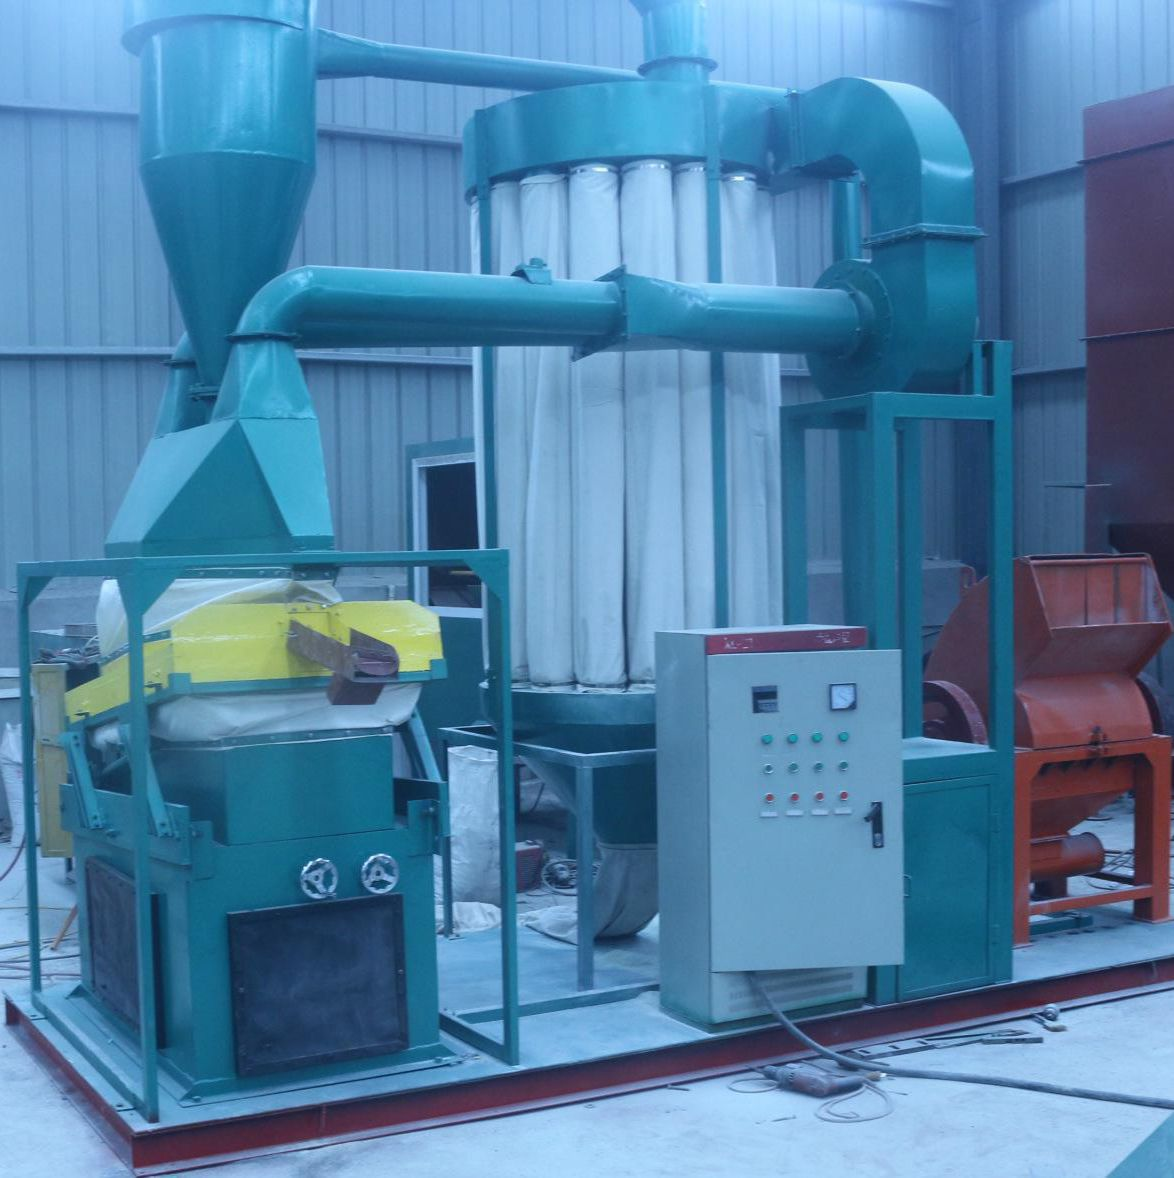 medium resolution of granulation and recycling machine for copper aluminum wire cable wiring harnesses communication cables household electric wire